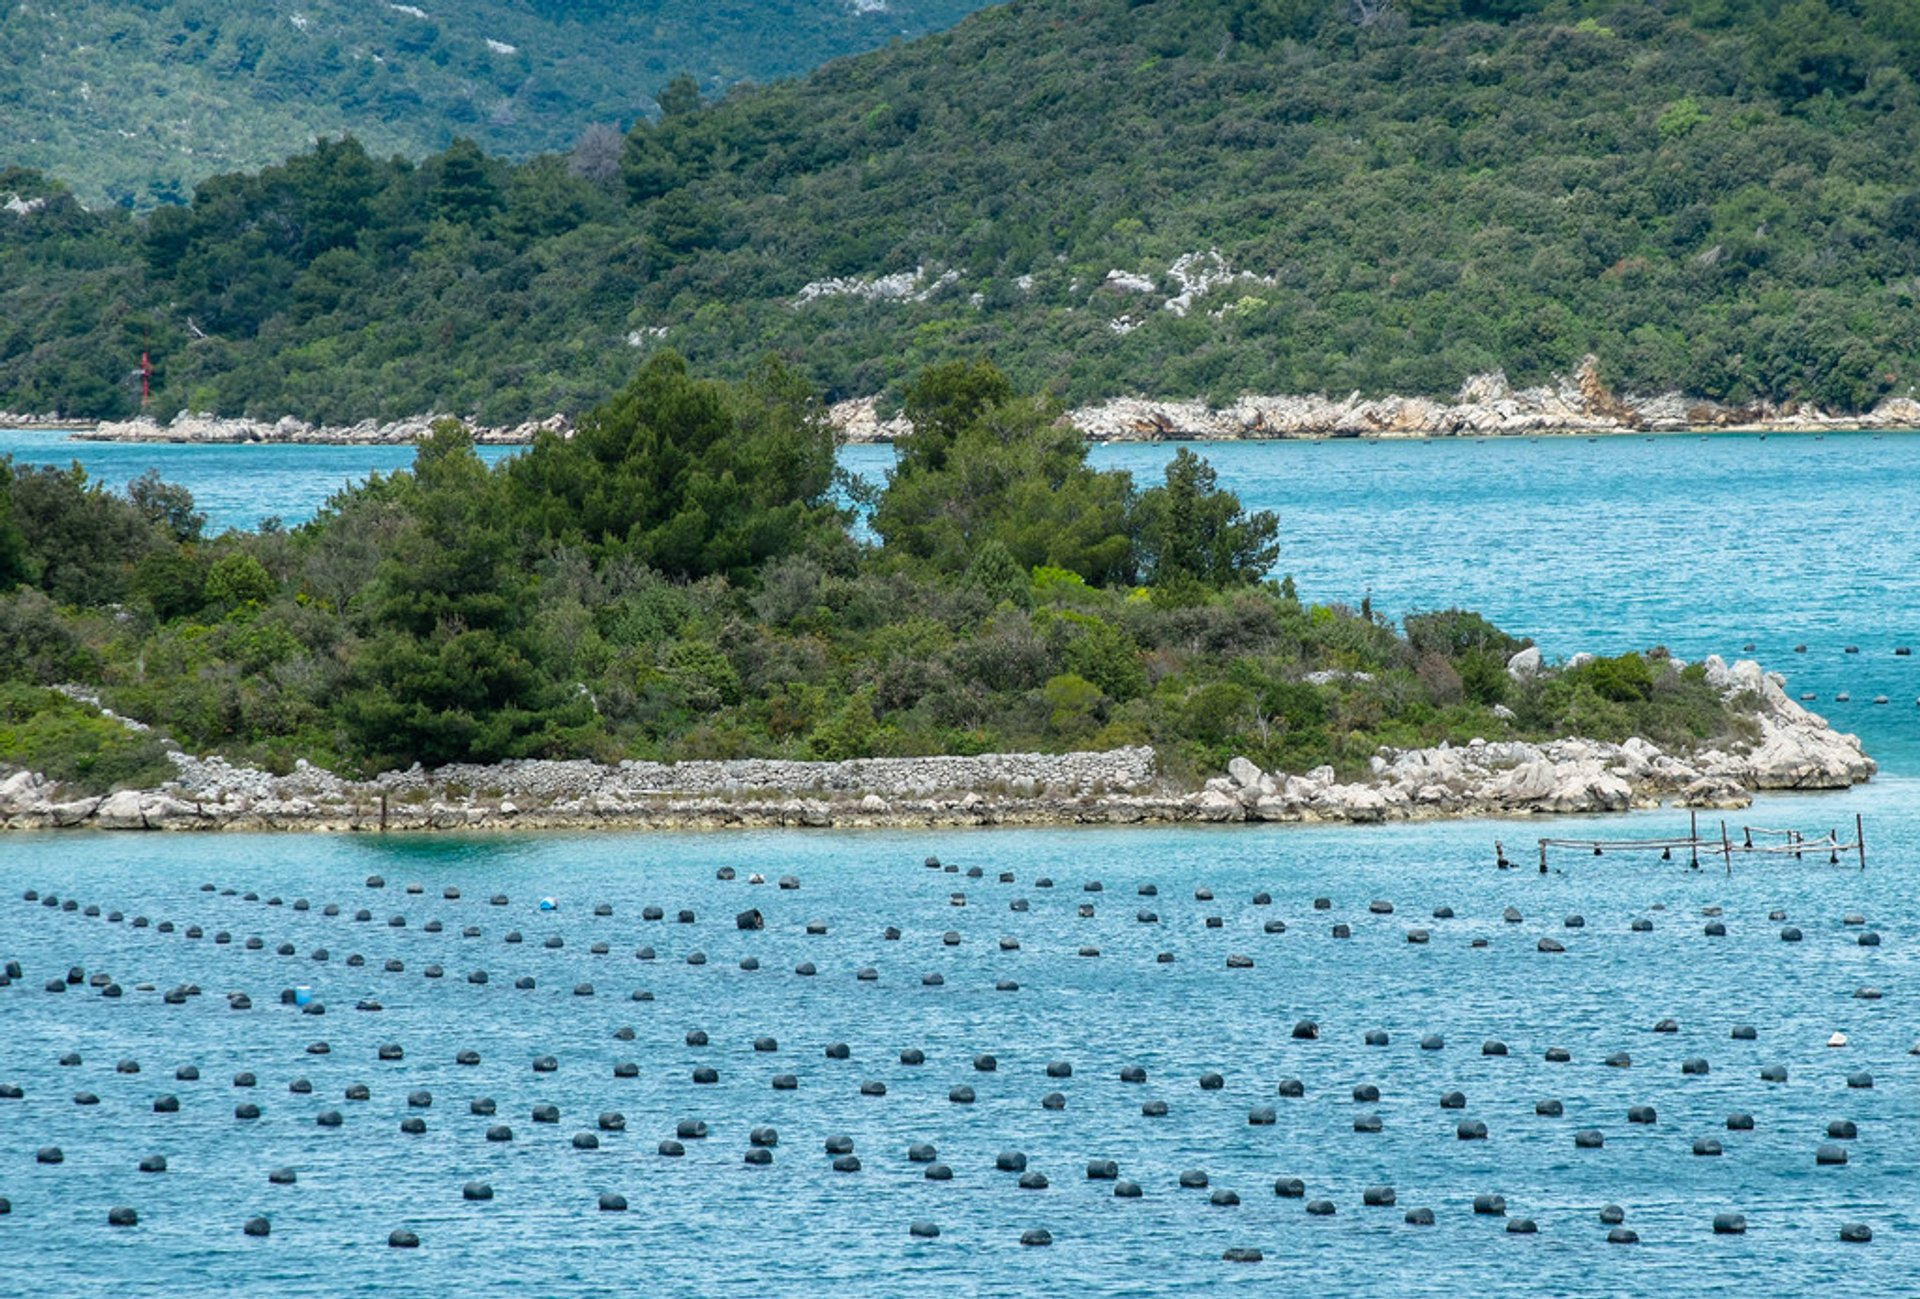 Oysters Season in Croatia - Best Season 2020